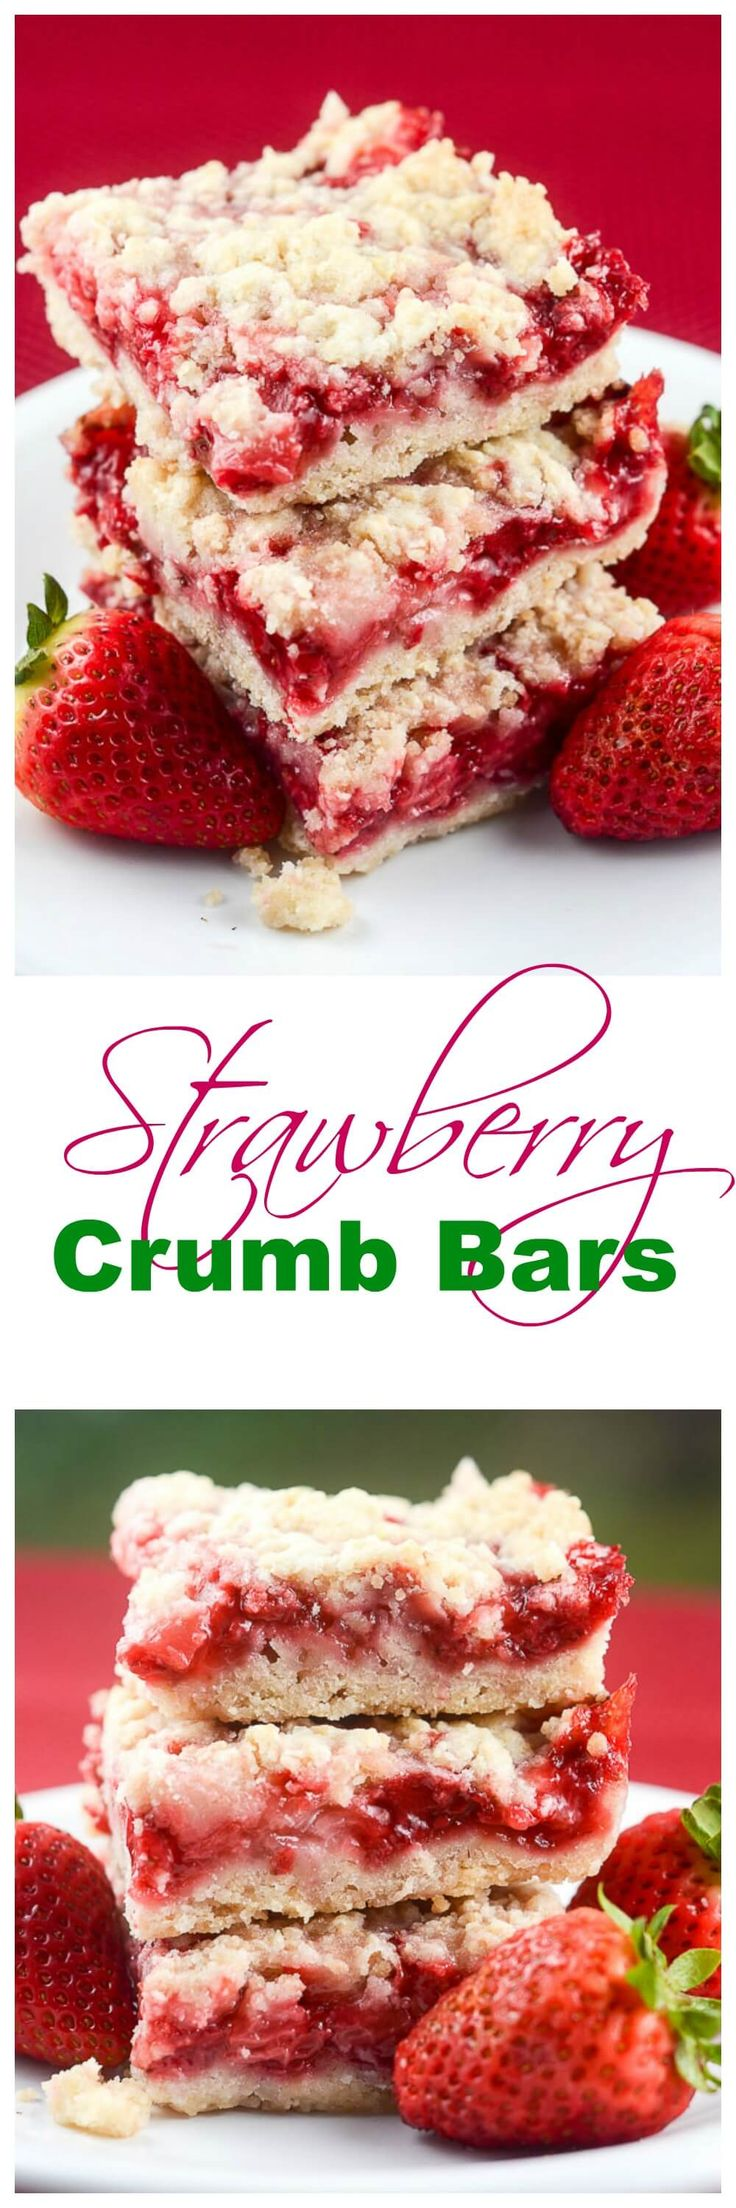 These easy Strawberry Crumb Bars, with a buttery crust, sweet fresh strawberry filling, and crunchy butter crumb topping make wonderful dessert bars for an afternoon snack, or to take to a summer party, picnic, or potluck. ~